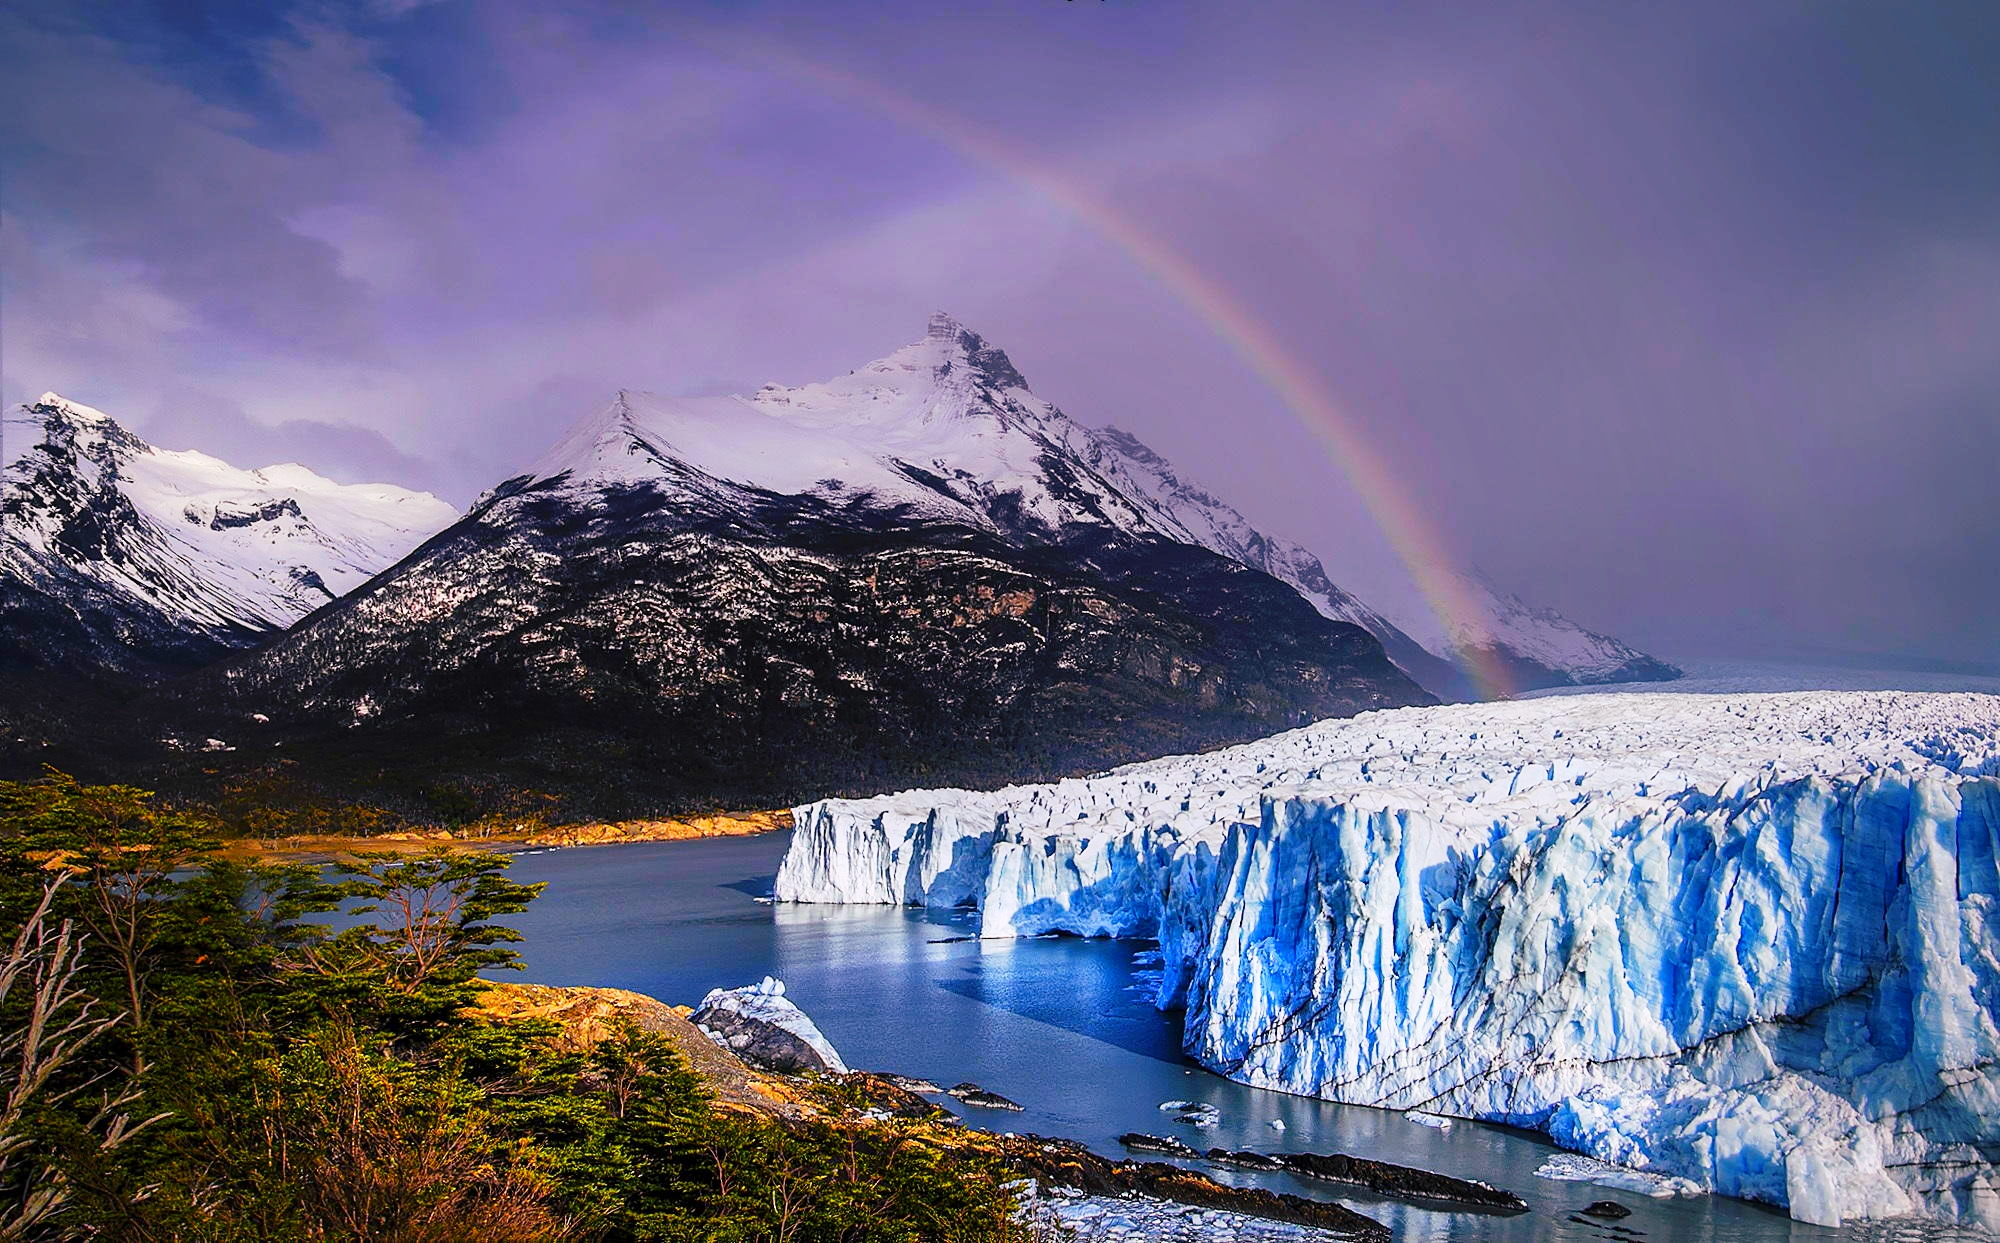 ice, clouds, Perito Moreno, rainbow, beautiful, forest, snowy peaks ...